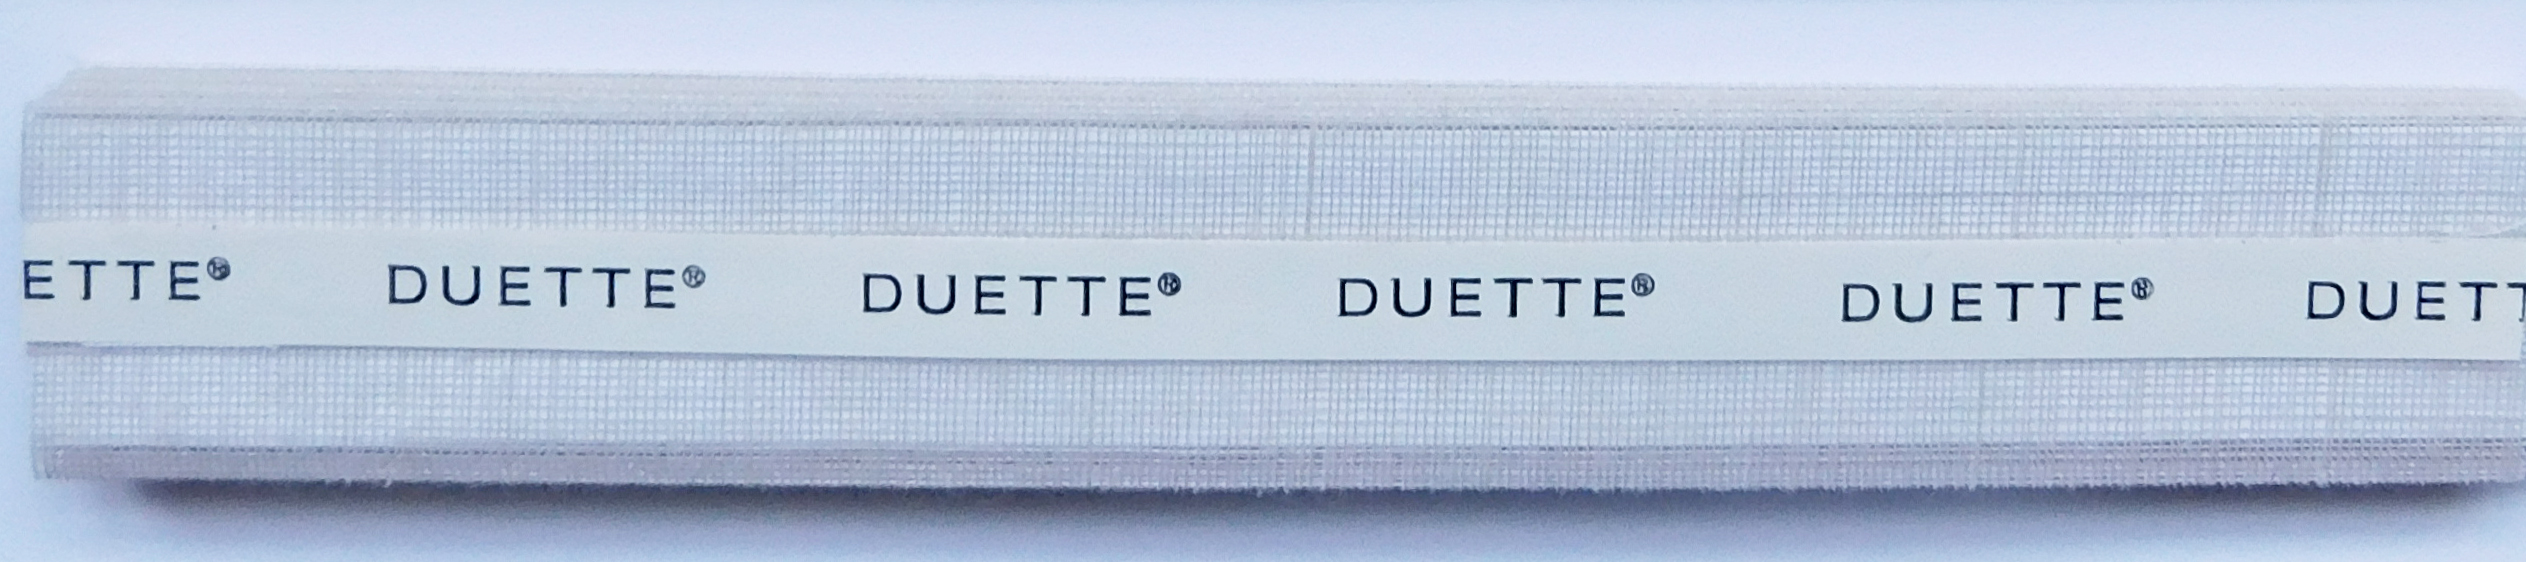 Batiste Sheer Oyster Fulltone Duette Blind Fabric Sample